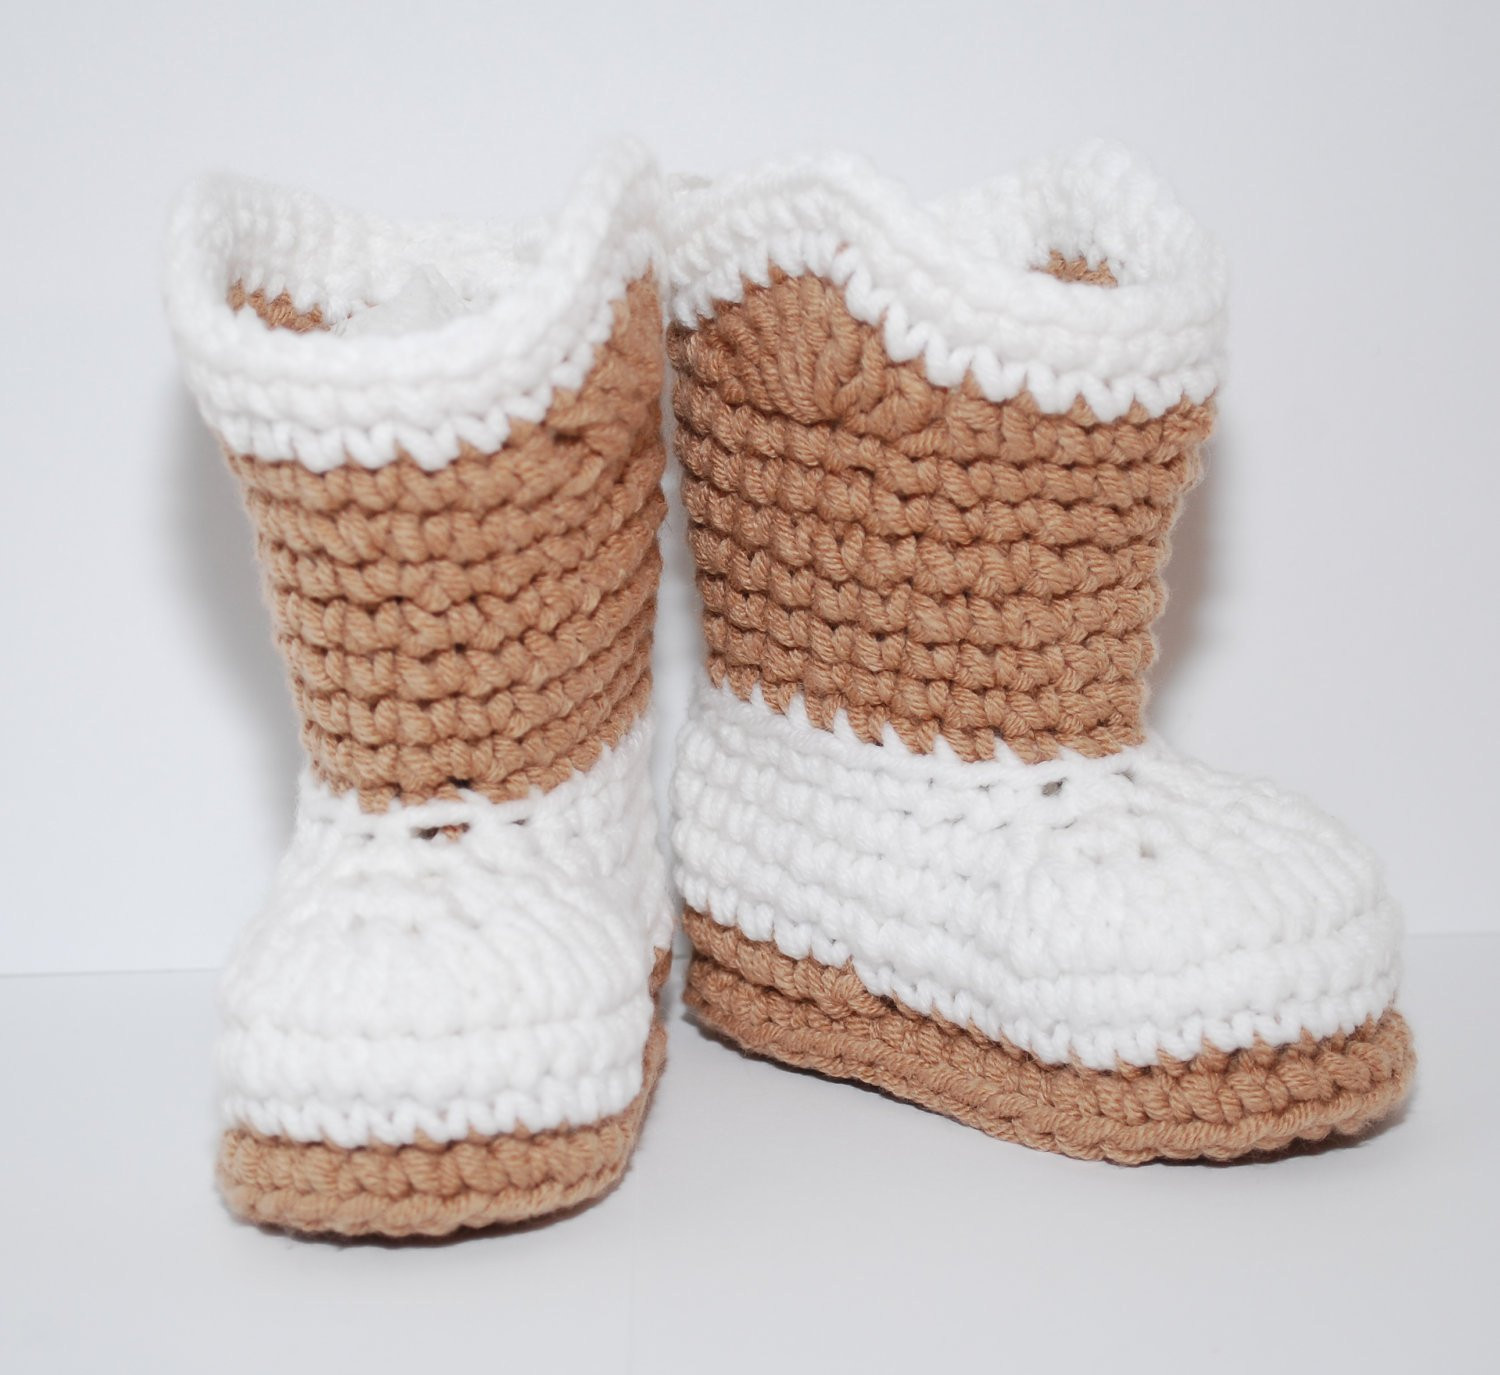 Crochet Boots Pattern Free Fresh Crochet Cowboy Boots Booties Shoes as Shown or Custom U Choose Of Amazing 44 Models Crochet Boots Pattern Free